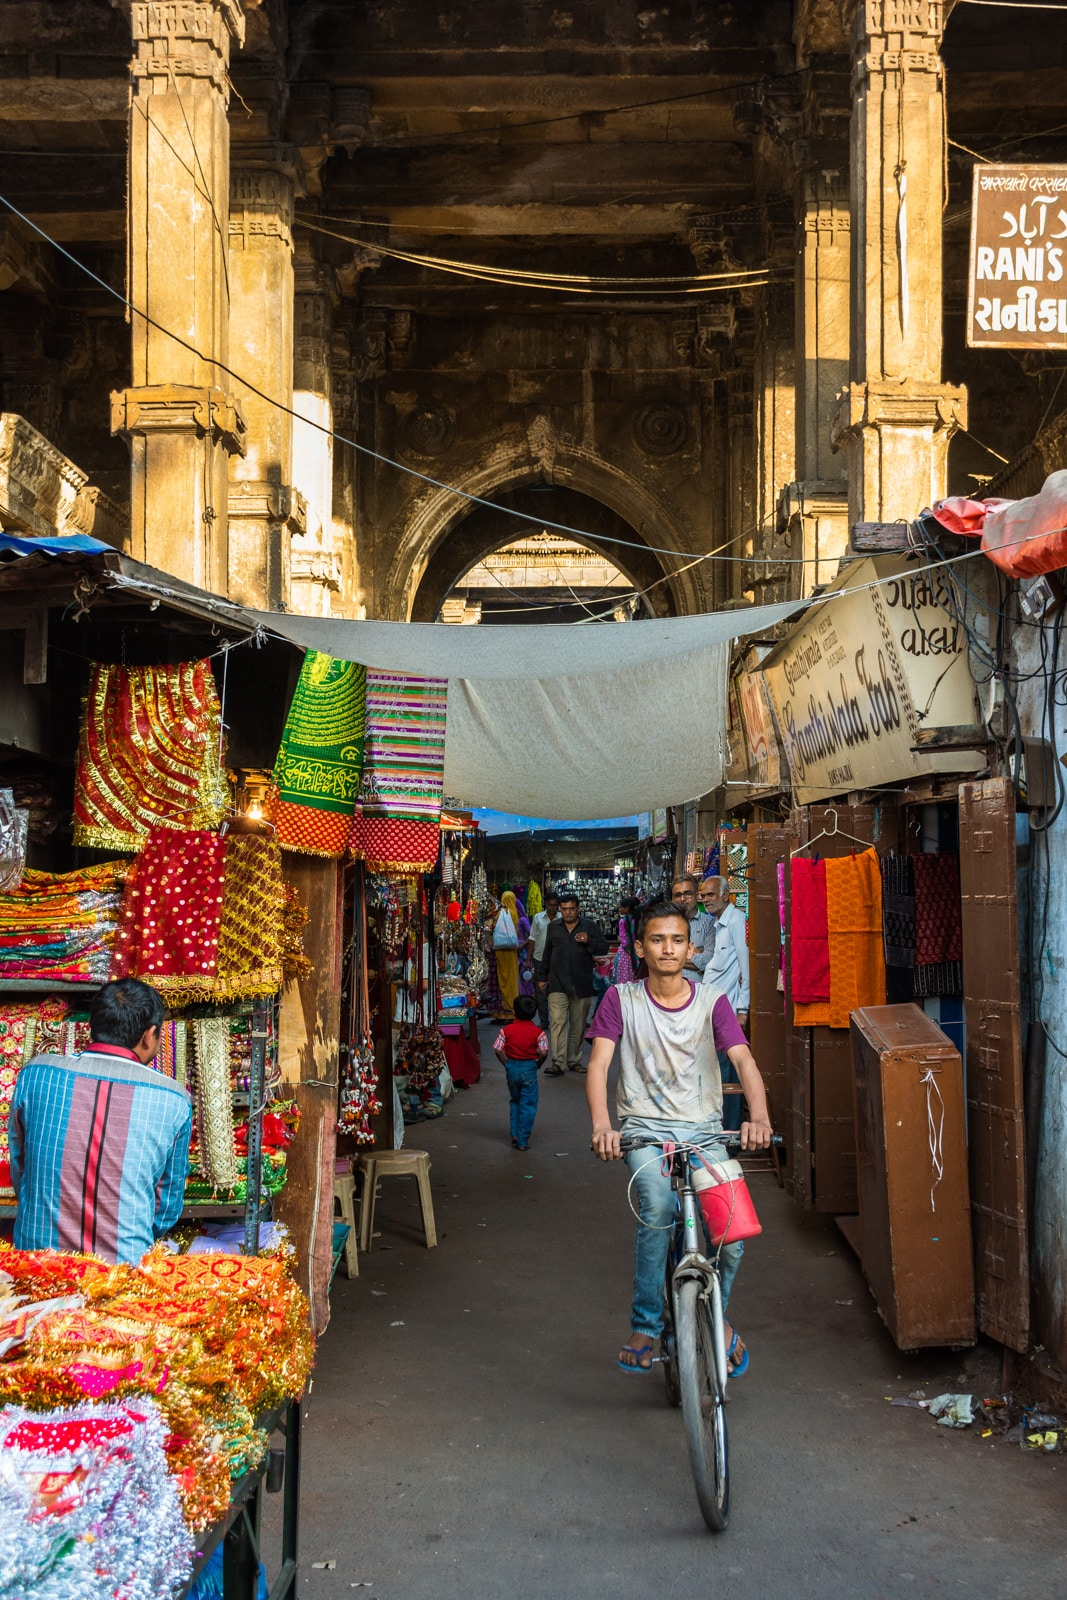 A young Indian boy riding a bicycle through a market street in Ahmedabad, Gujarat, India.